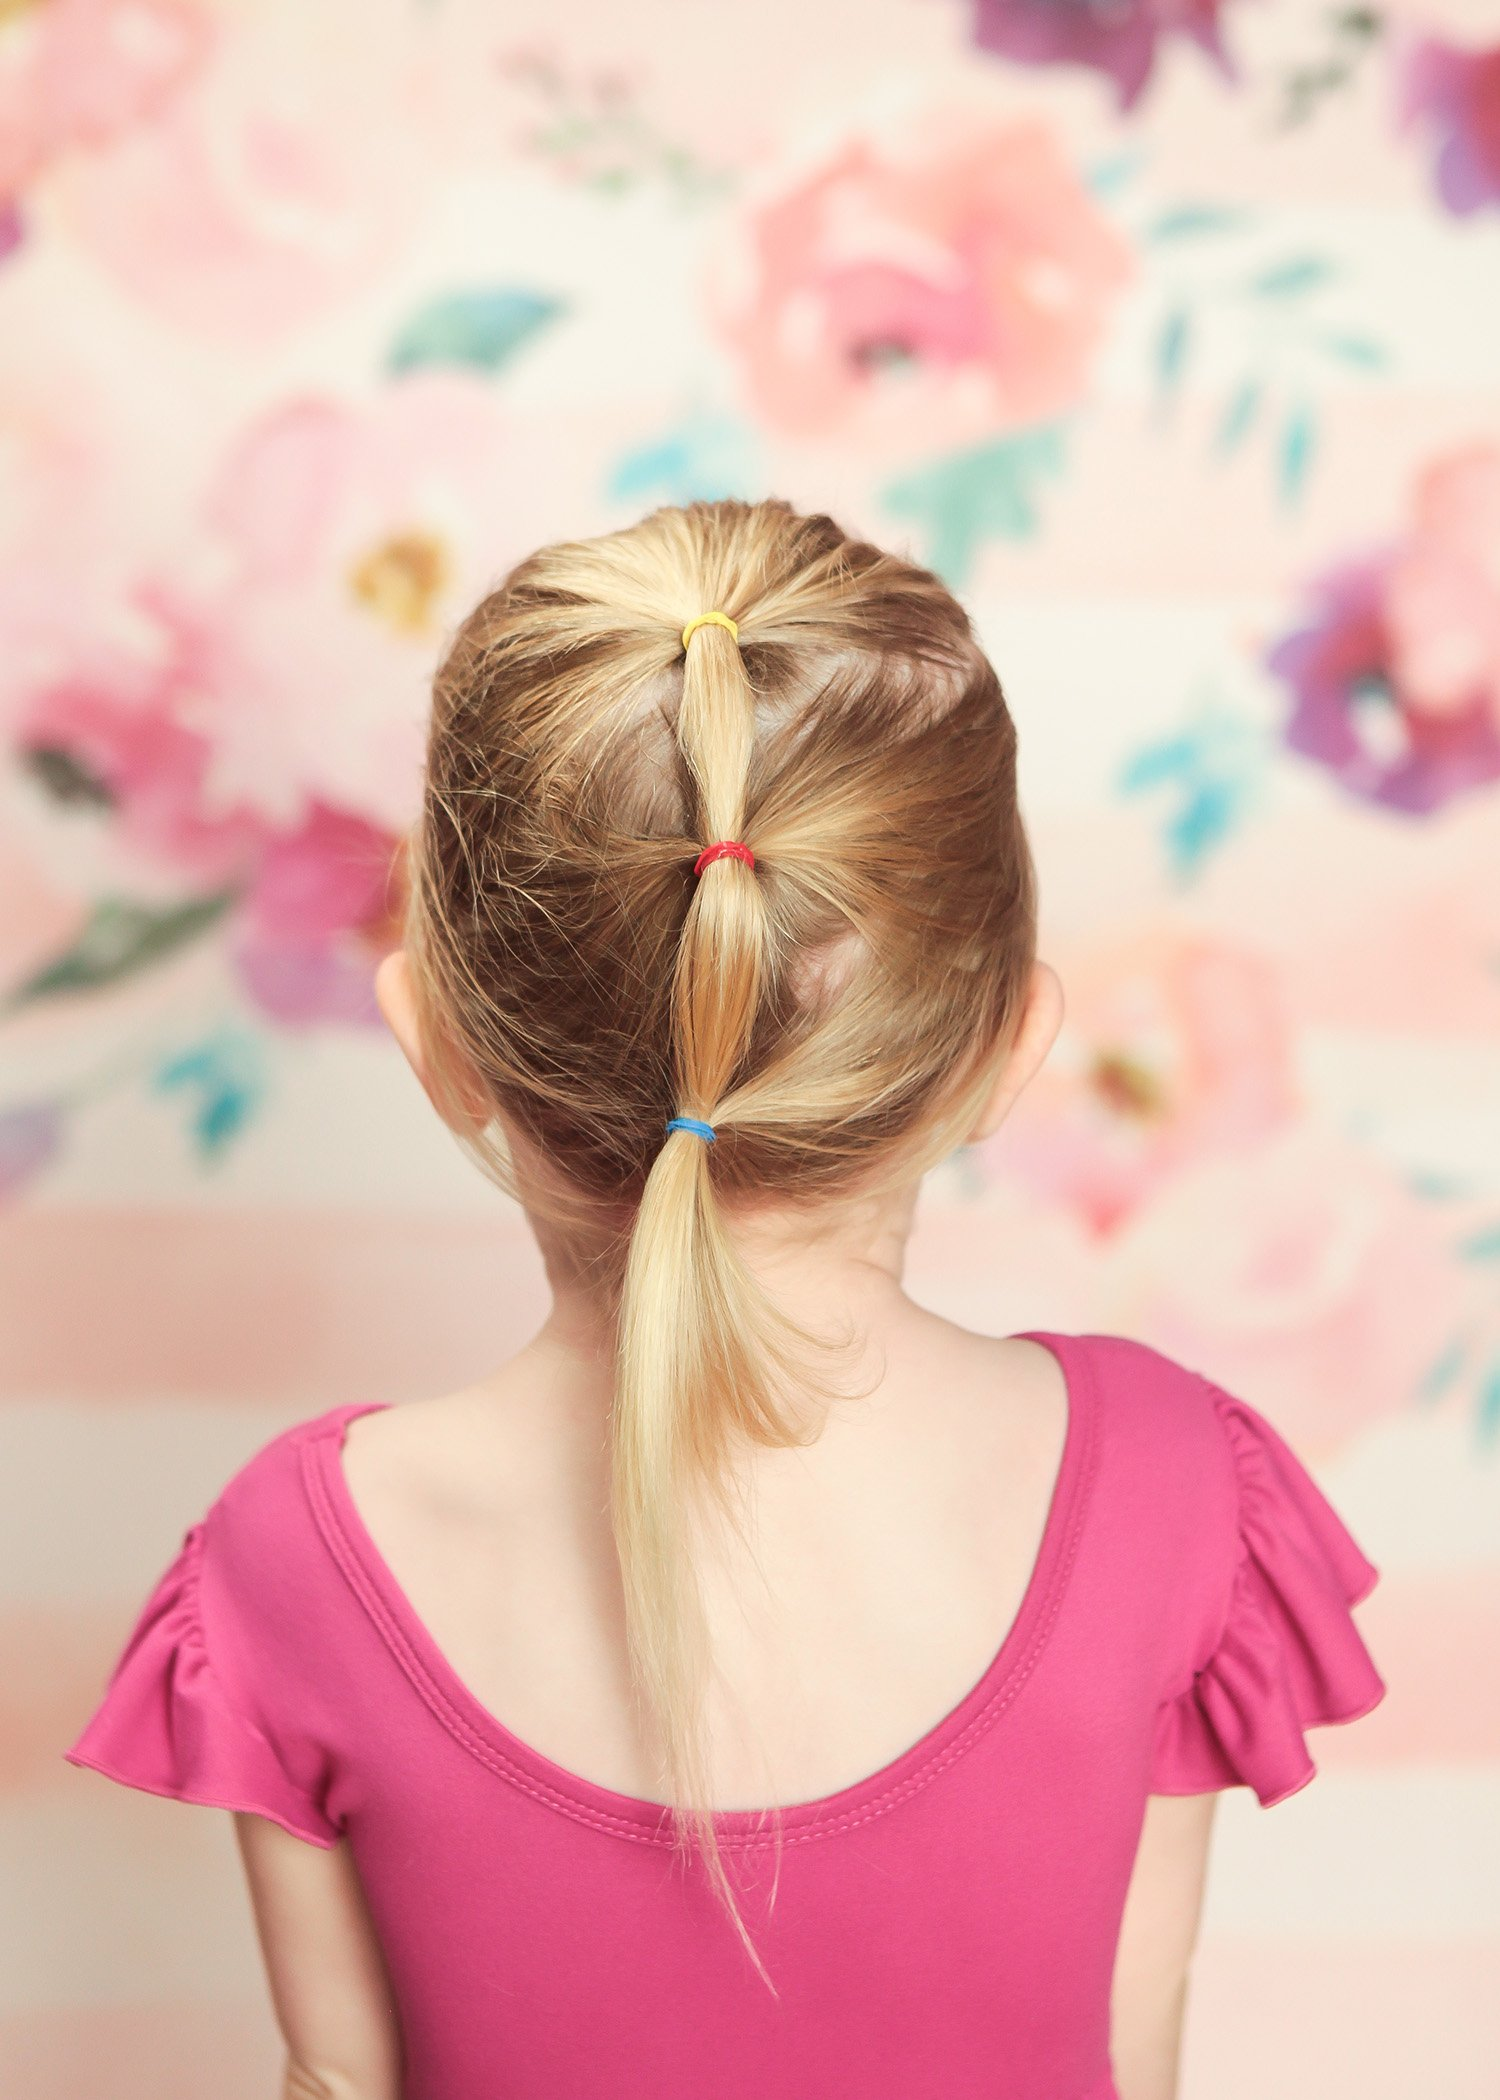 Toddler Hairstyles: This cascade ponytail is adorable and super easy to create!